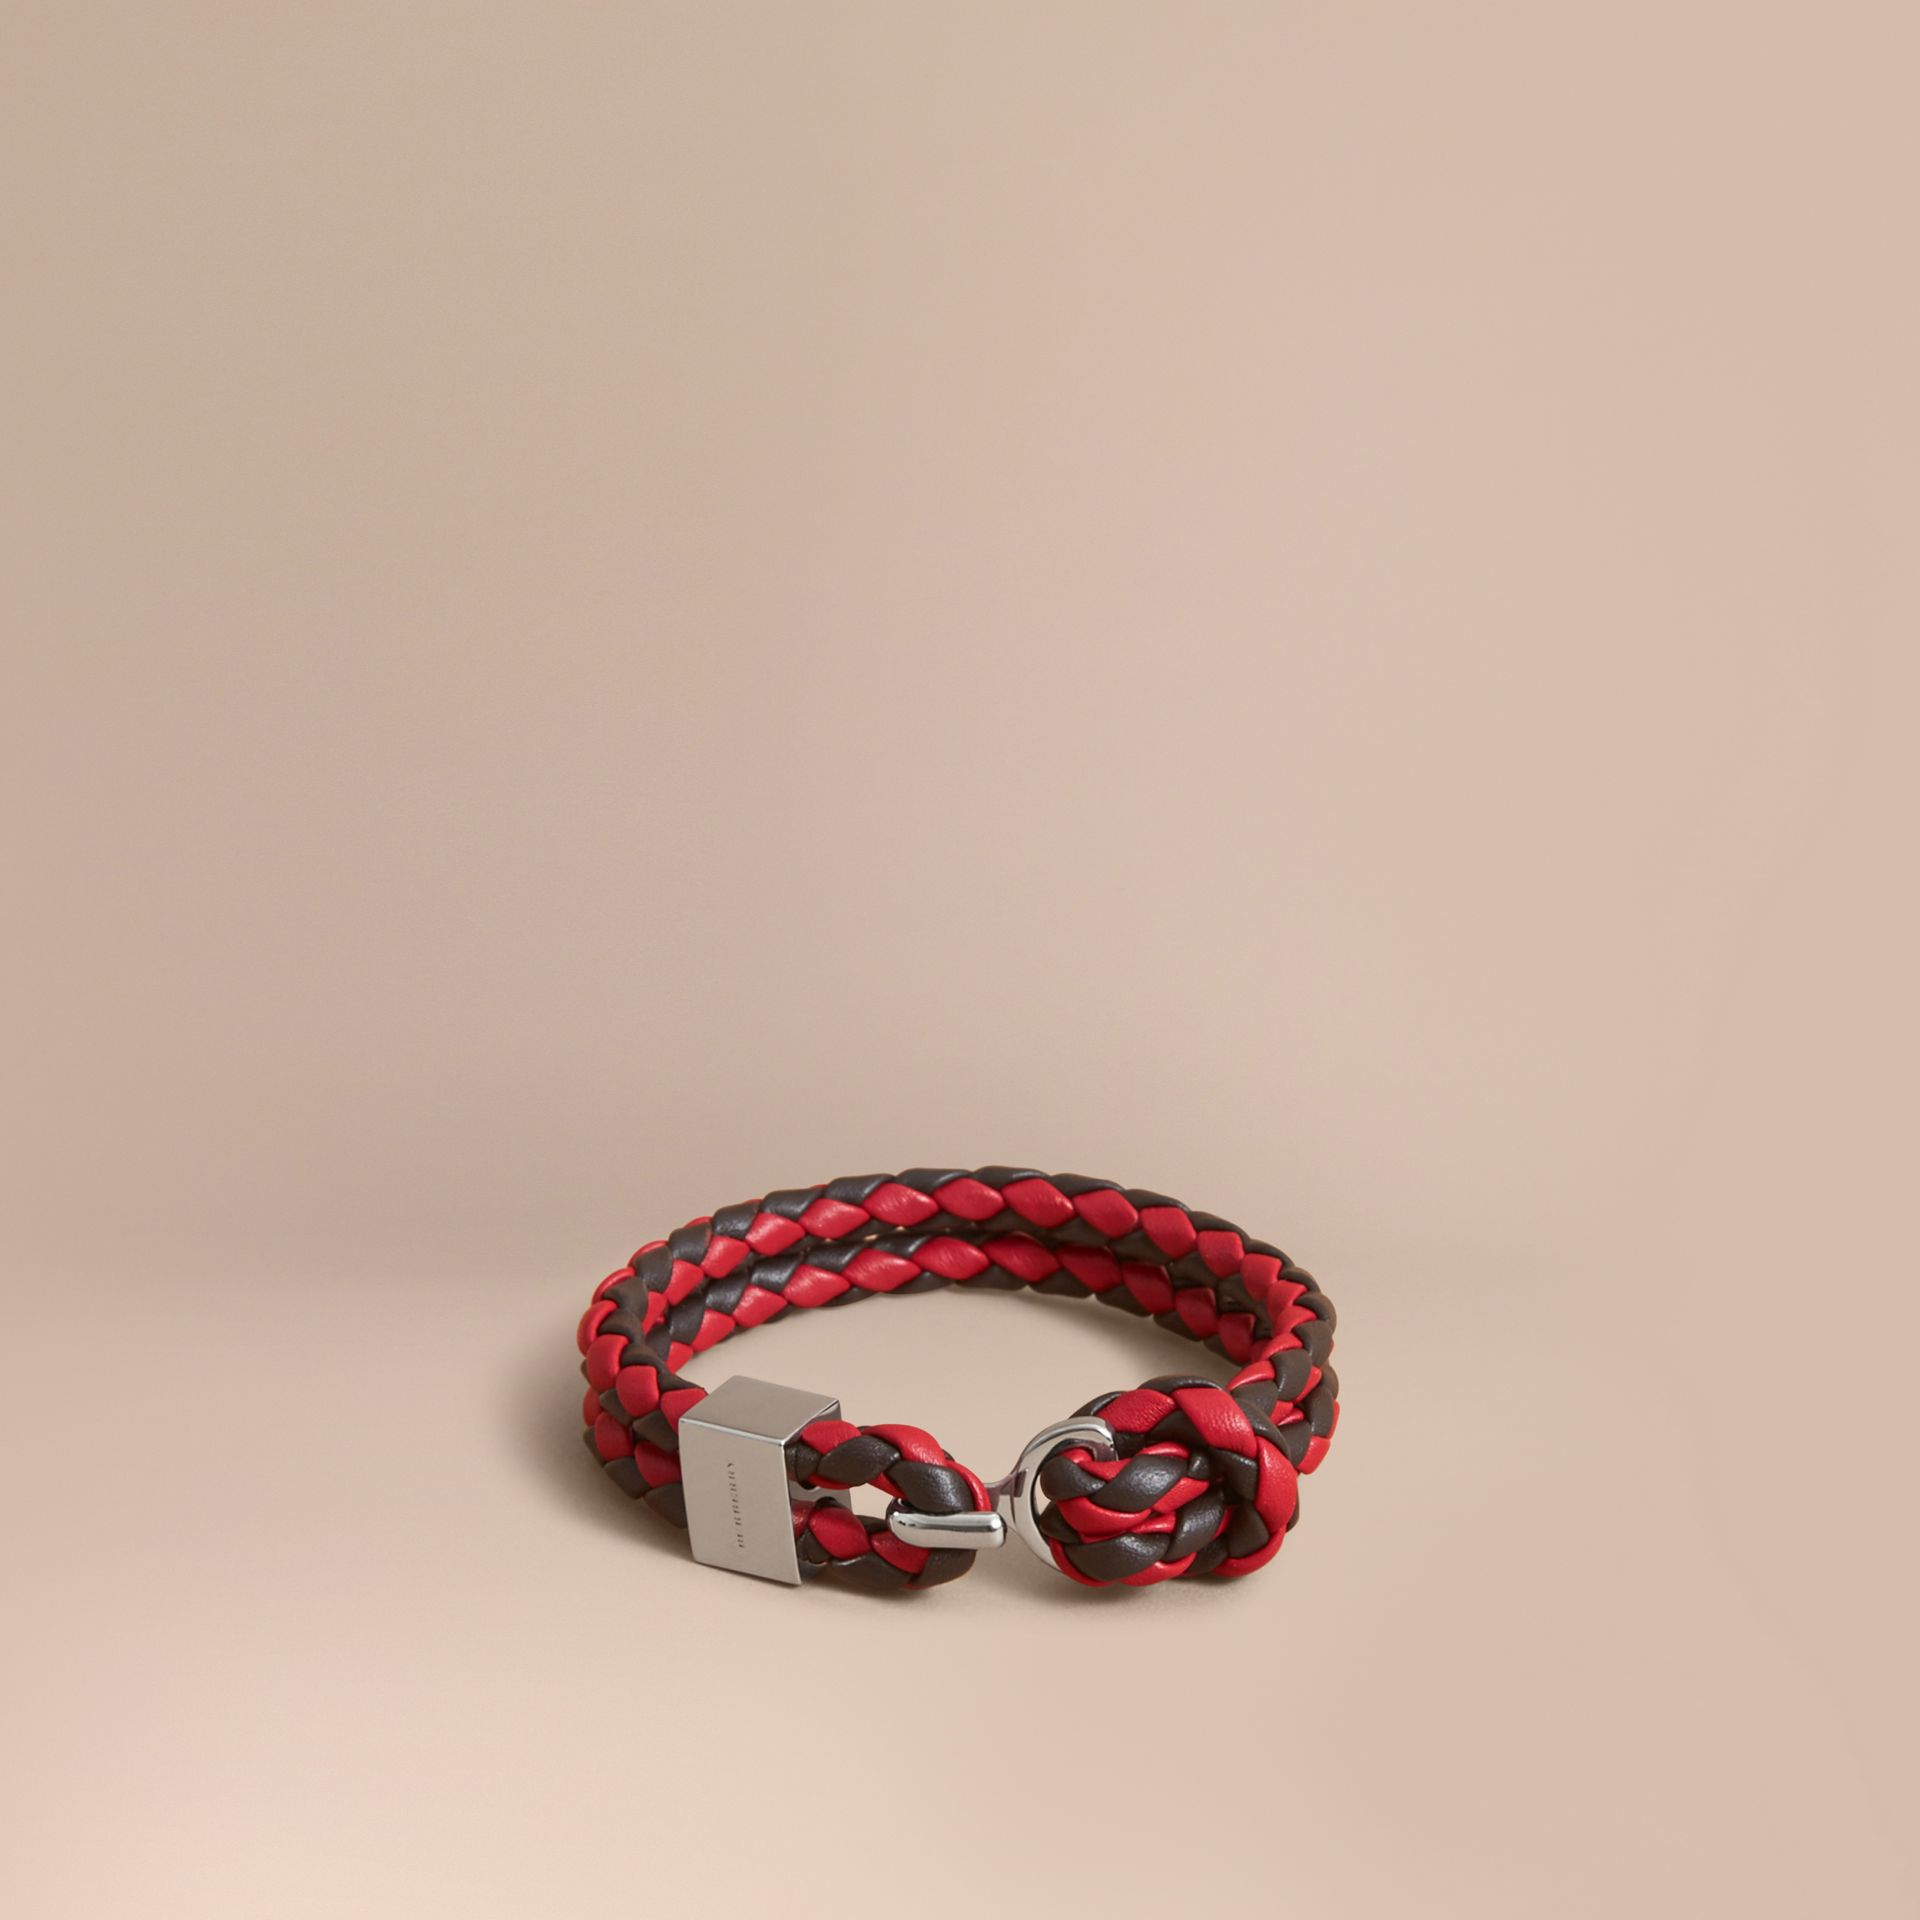 Two-tone Braided Leather Bracelet in Peppercorn/coral Red - Men | Burberry Canada - gallery image 1